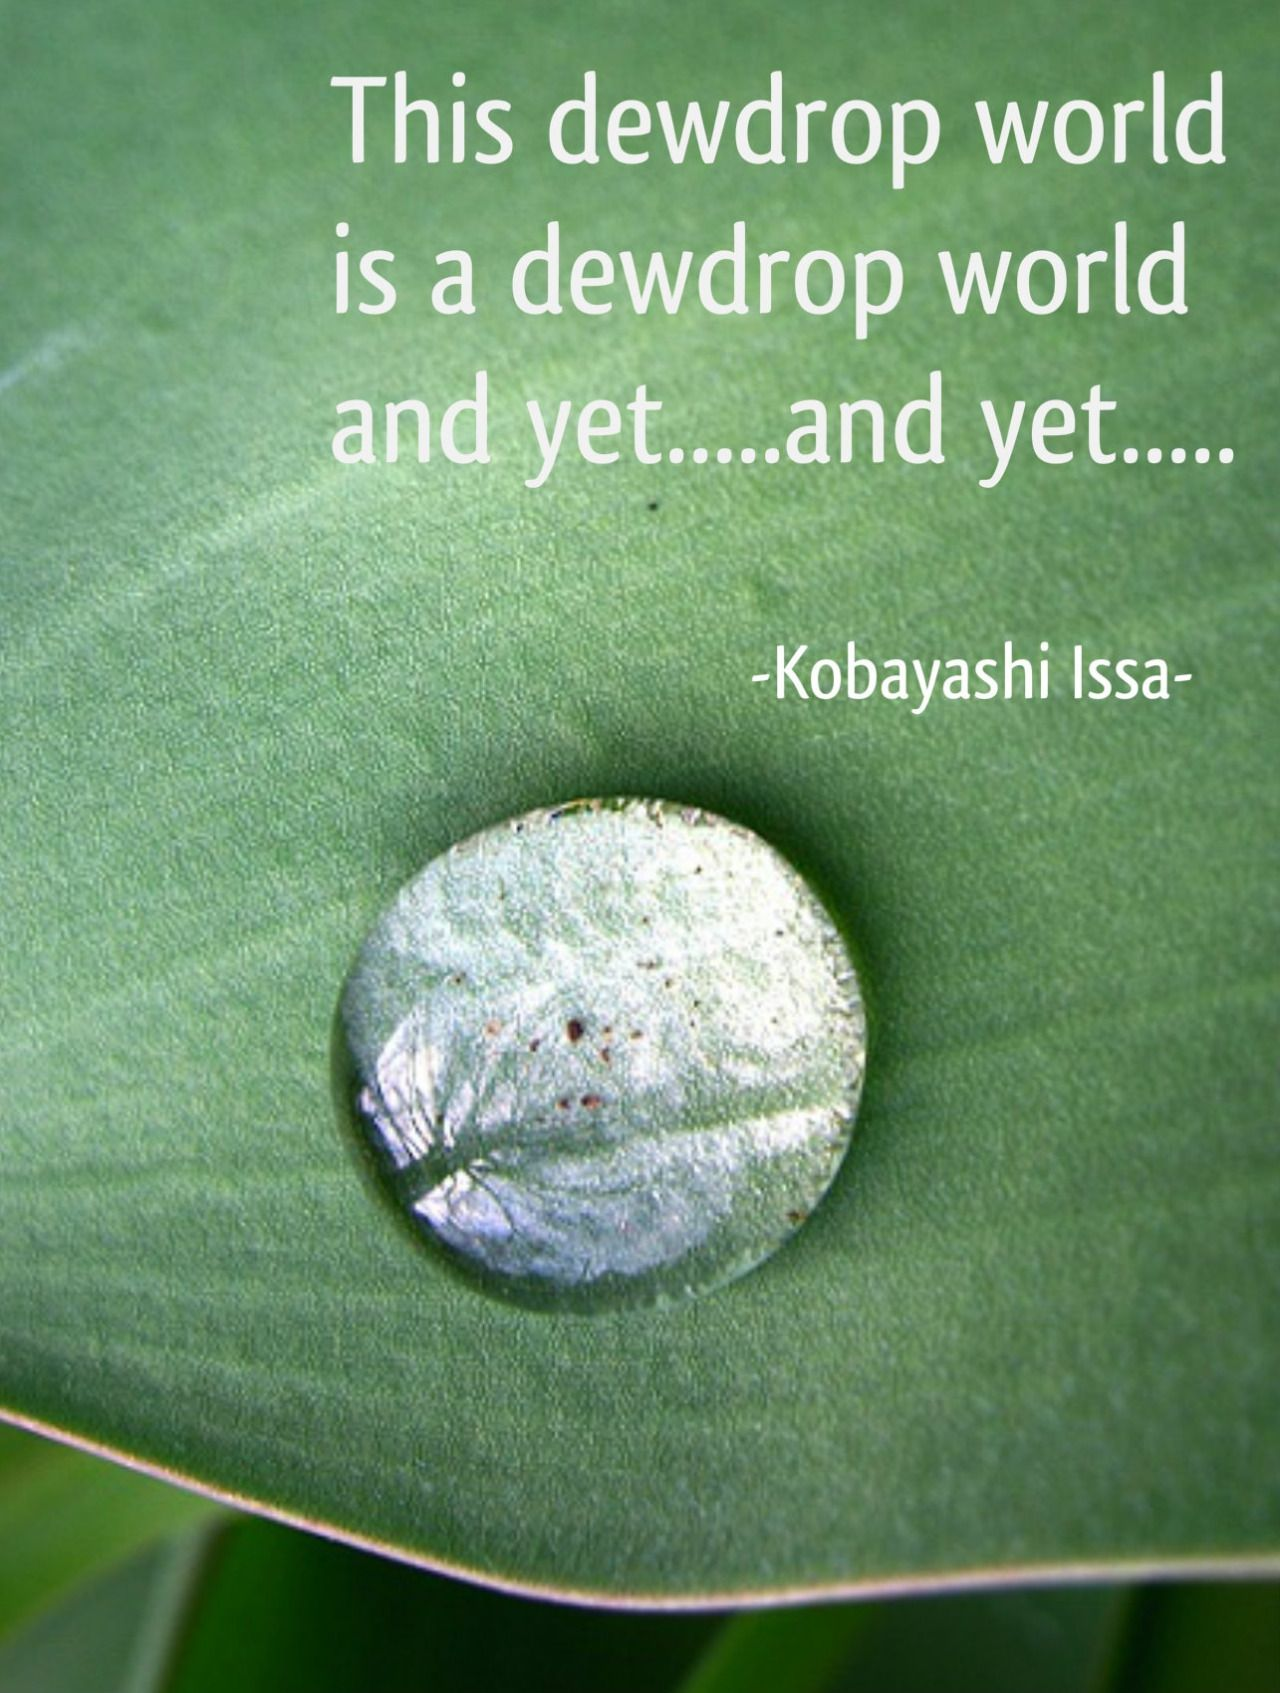 Draw & Wings. - This dewdrop world is a dewdrop world. And...